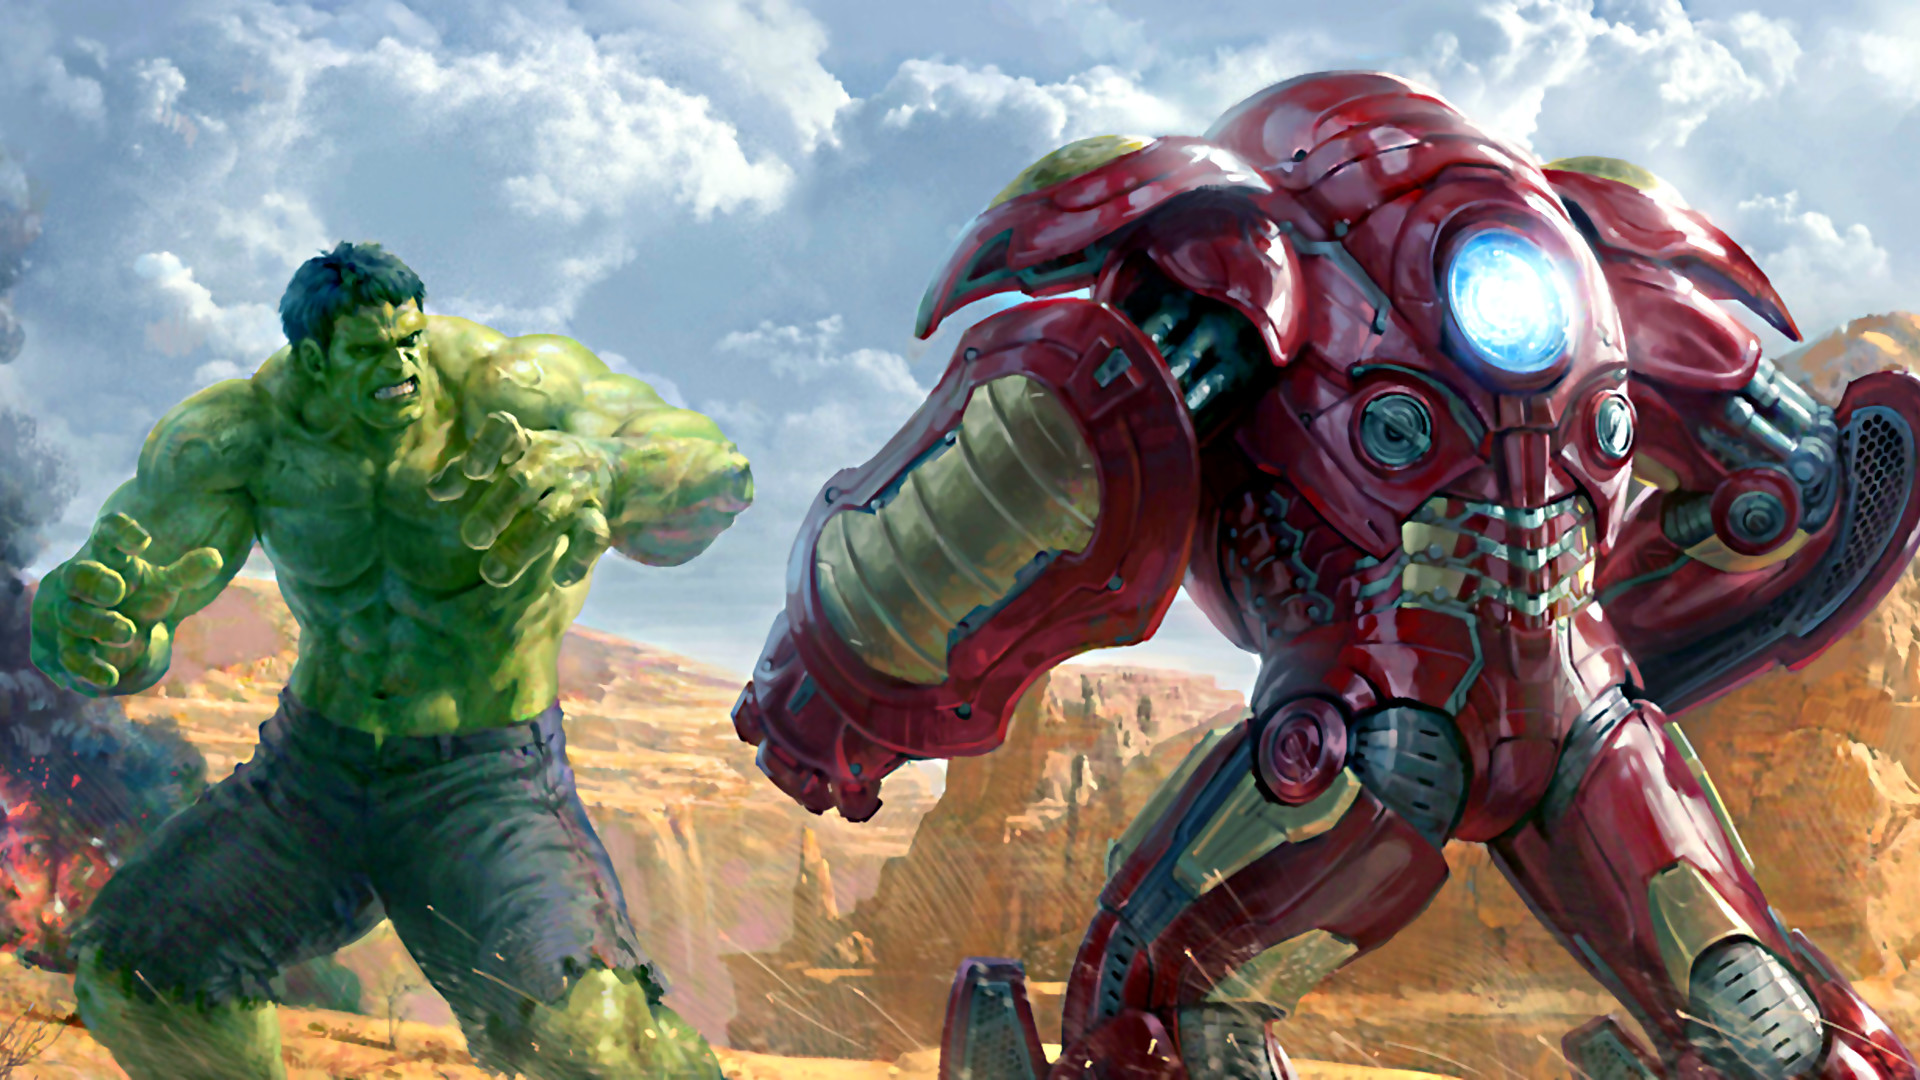 Res: 1920x1080, Comics - Iron Man Marvel Comics Hulkbuster Hulk Wallpaper